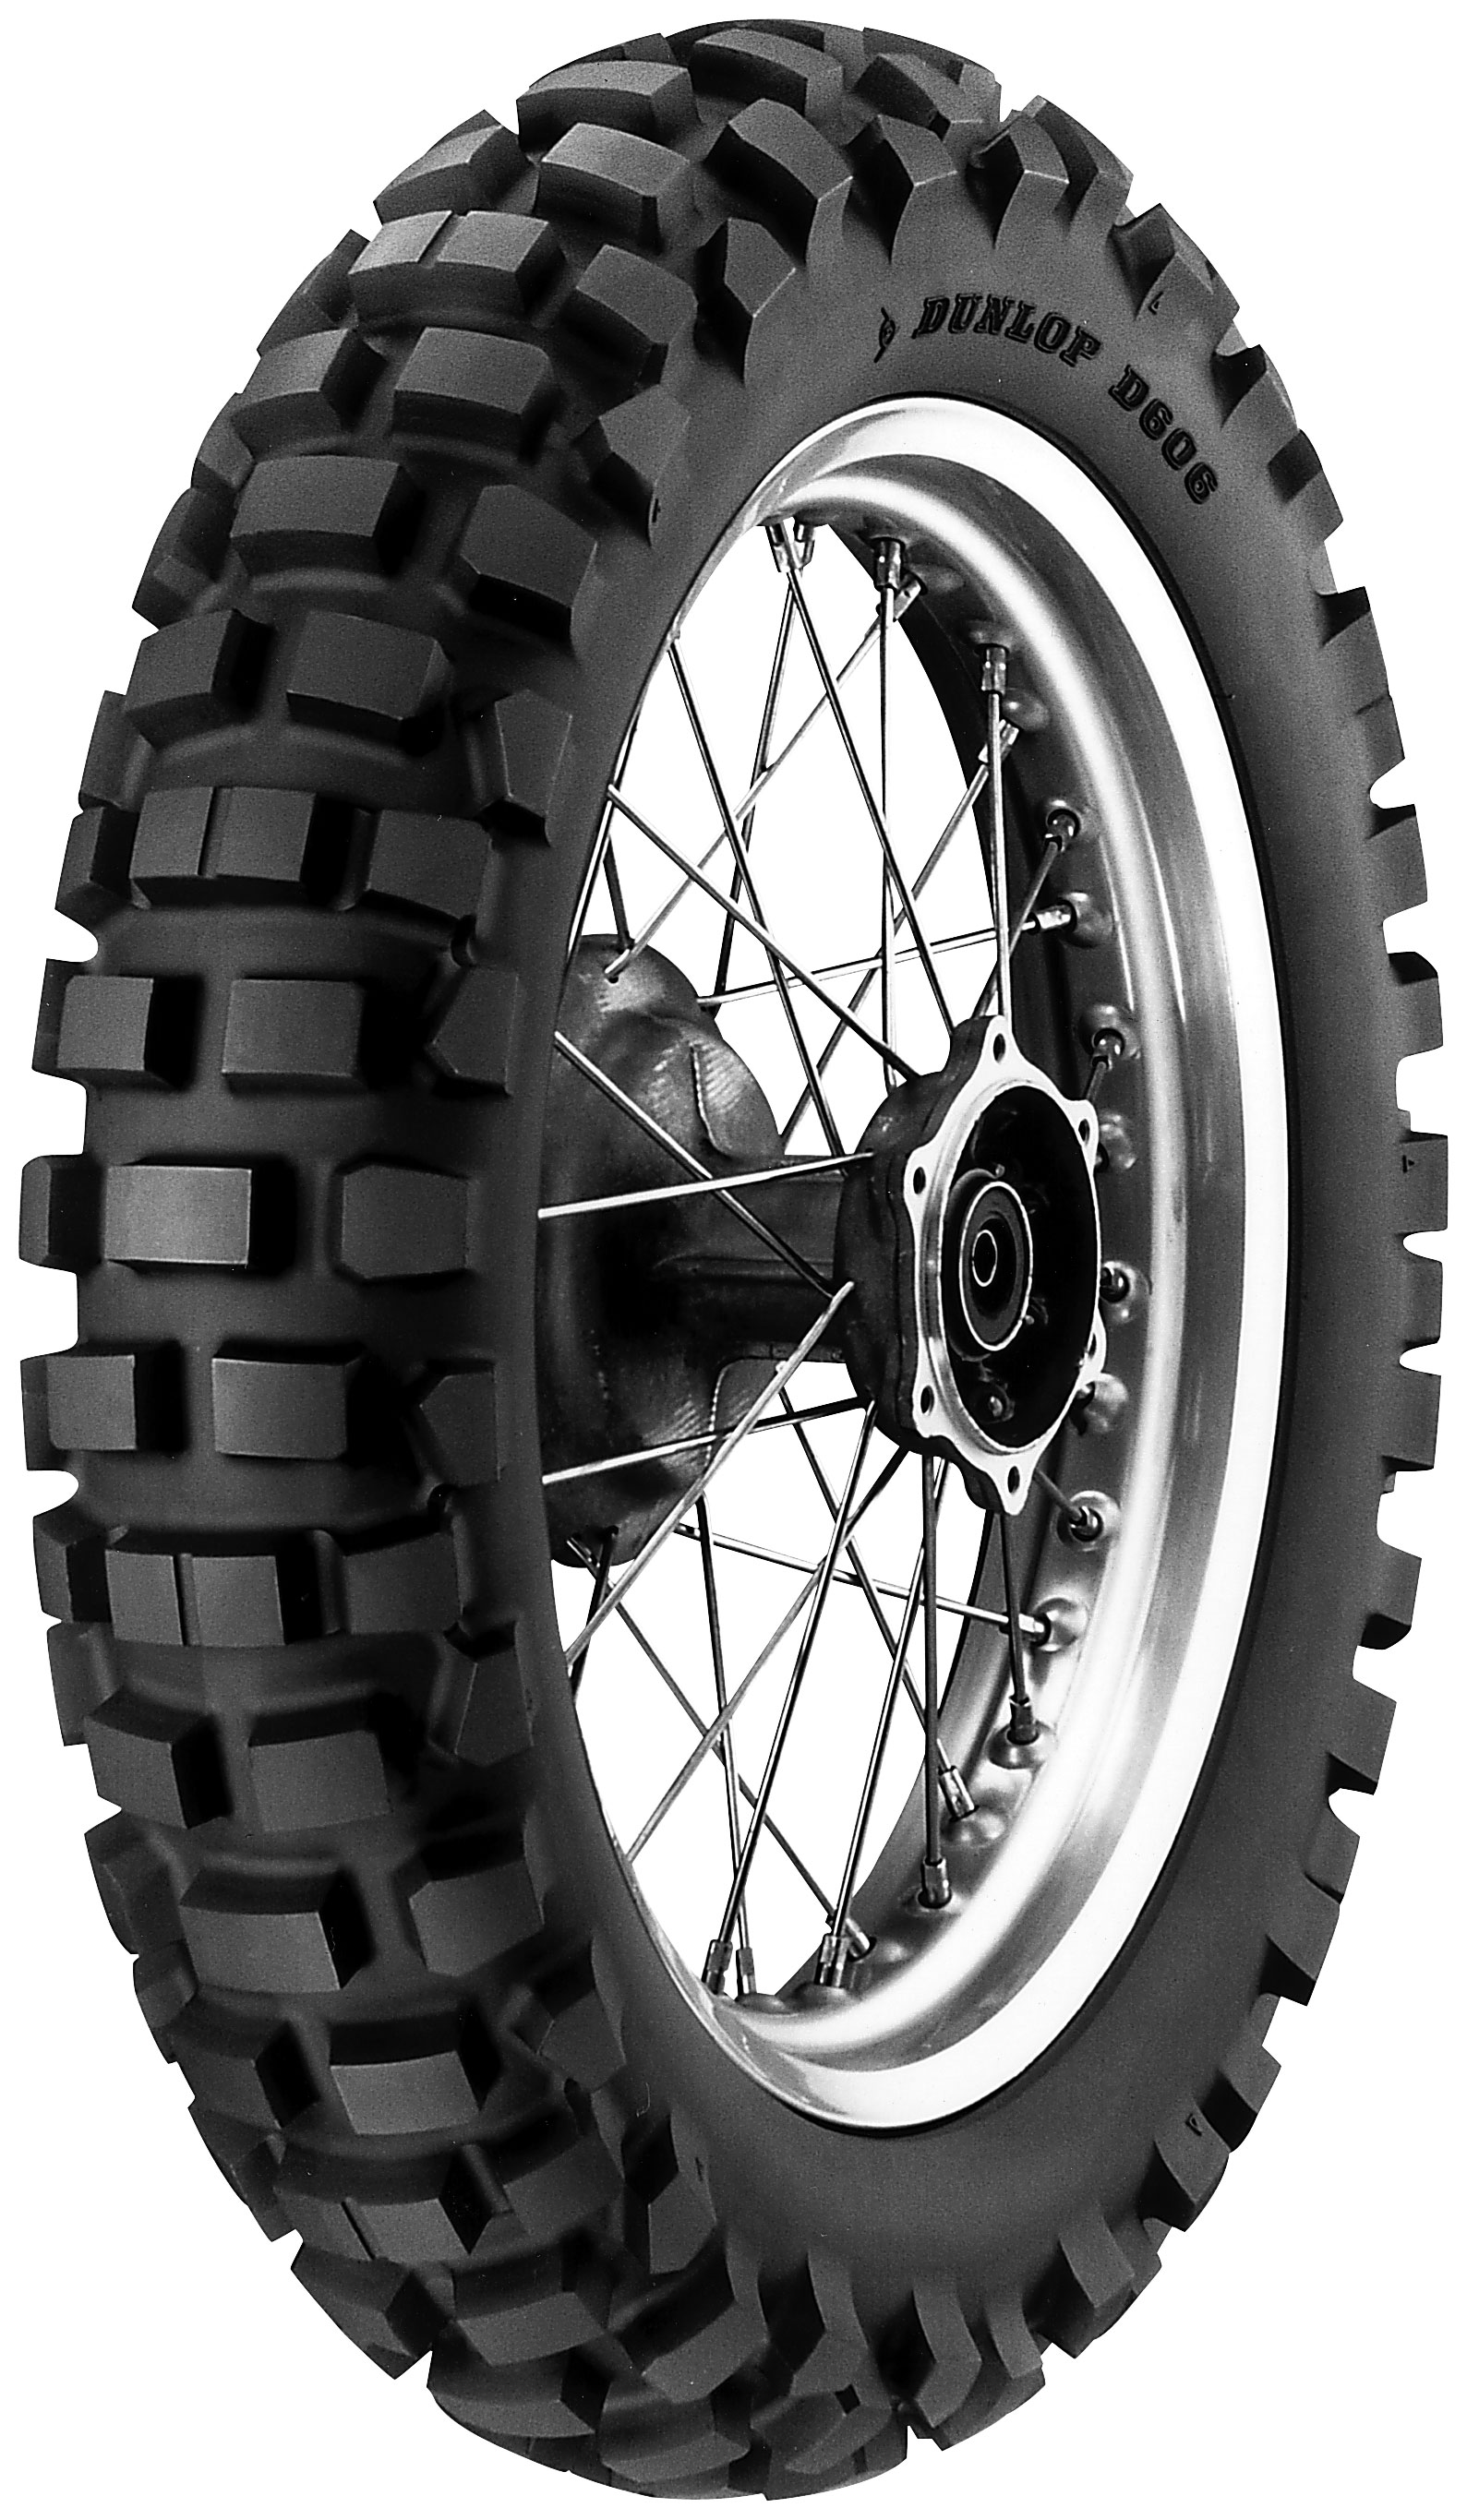 DUNLOP® D606 DUAL PURPOSE REAR TIRE - Bike Tire PNG